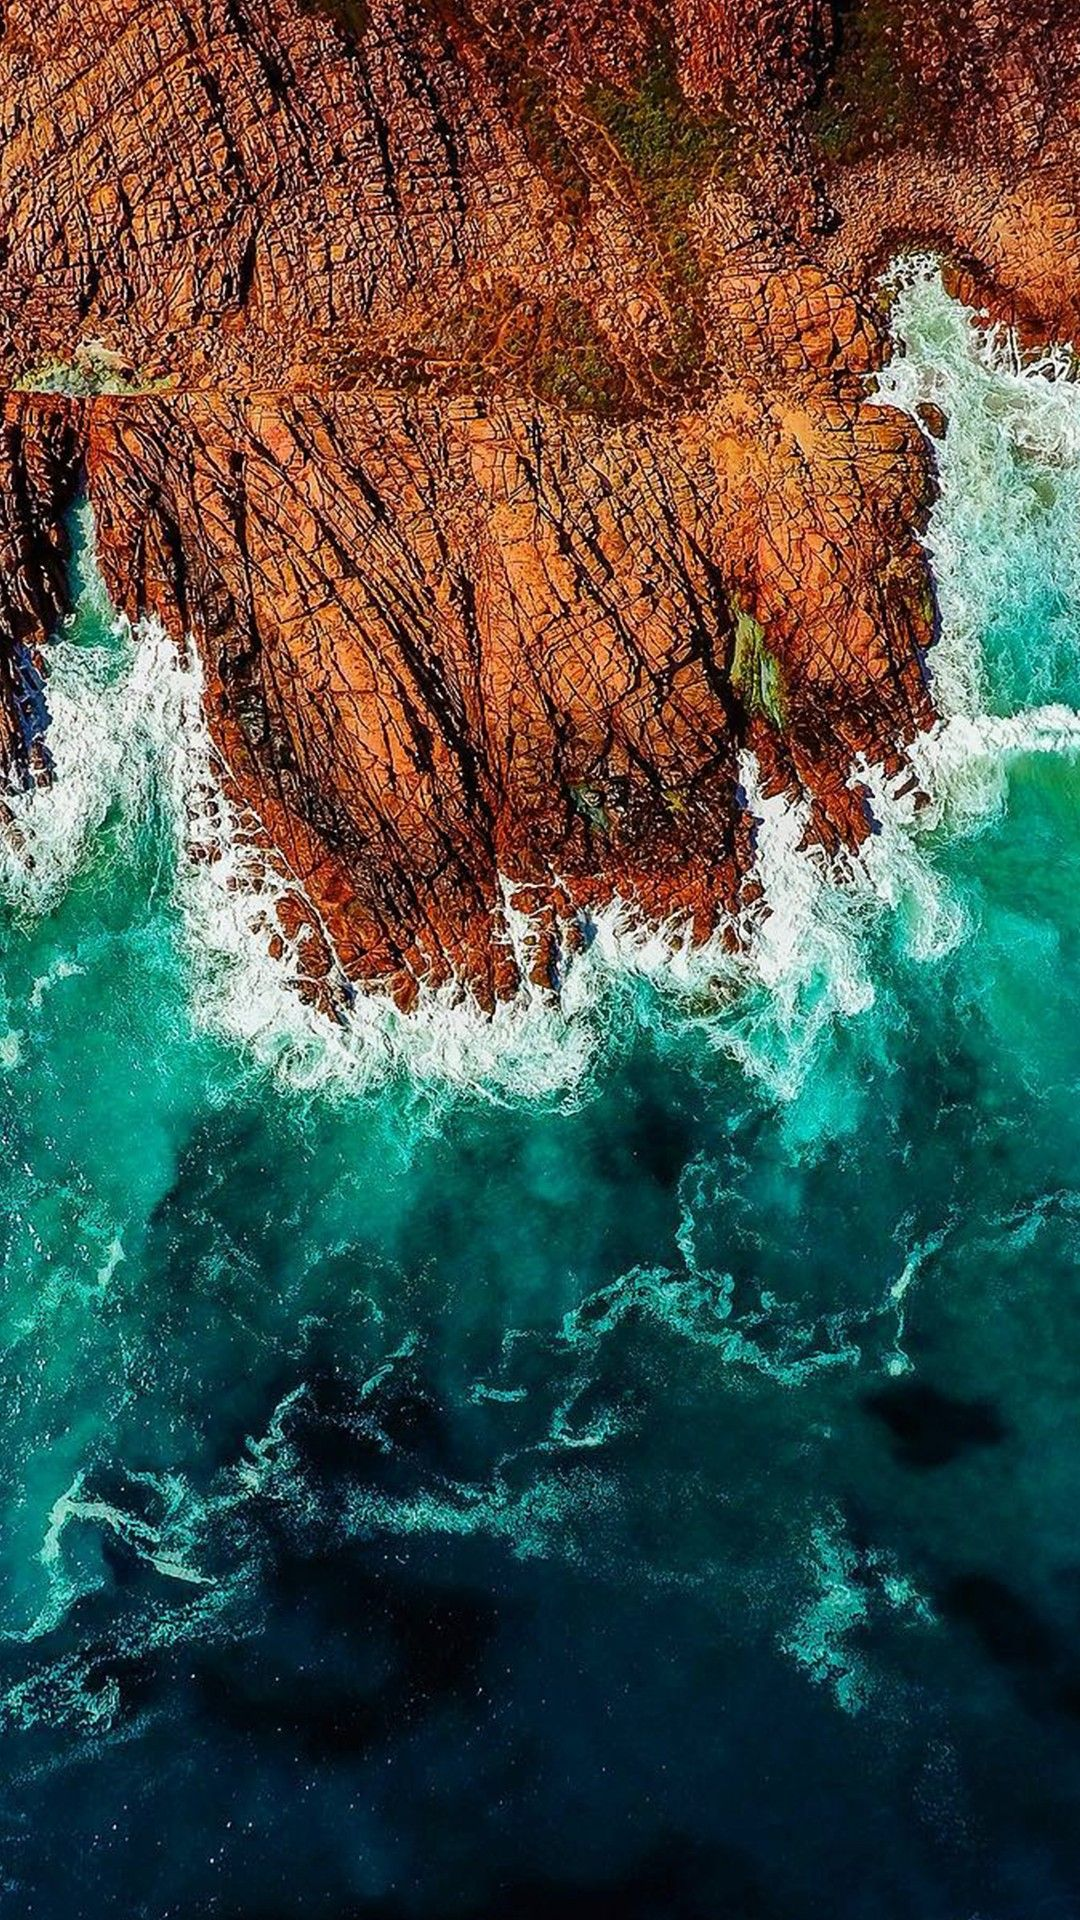 iPhone wallpaper. Ocean waves. Fondo de pantalla ios